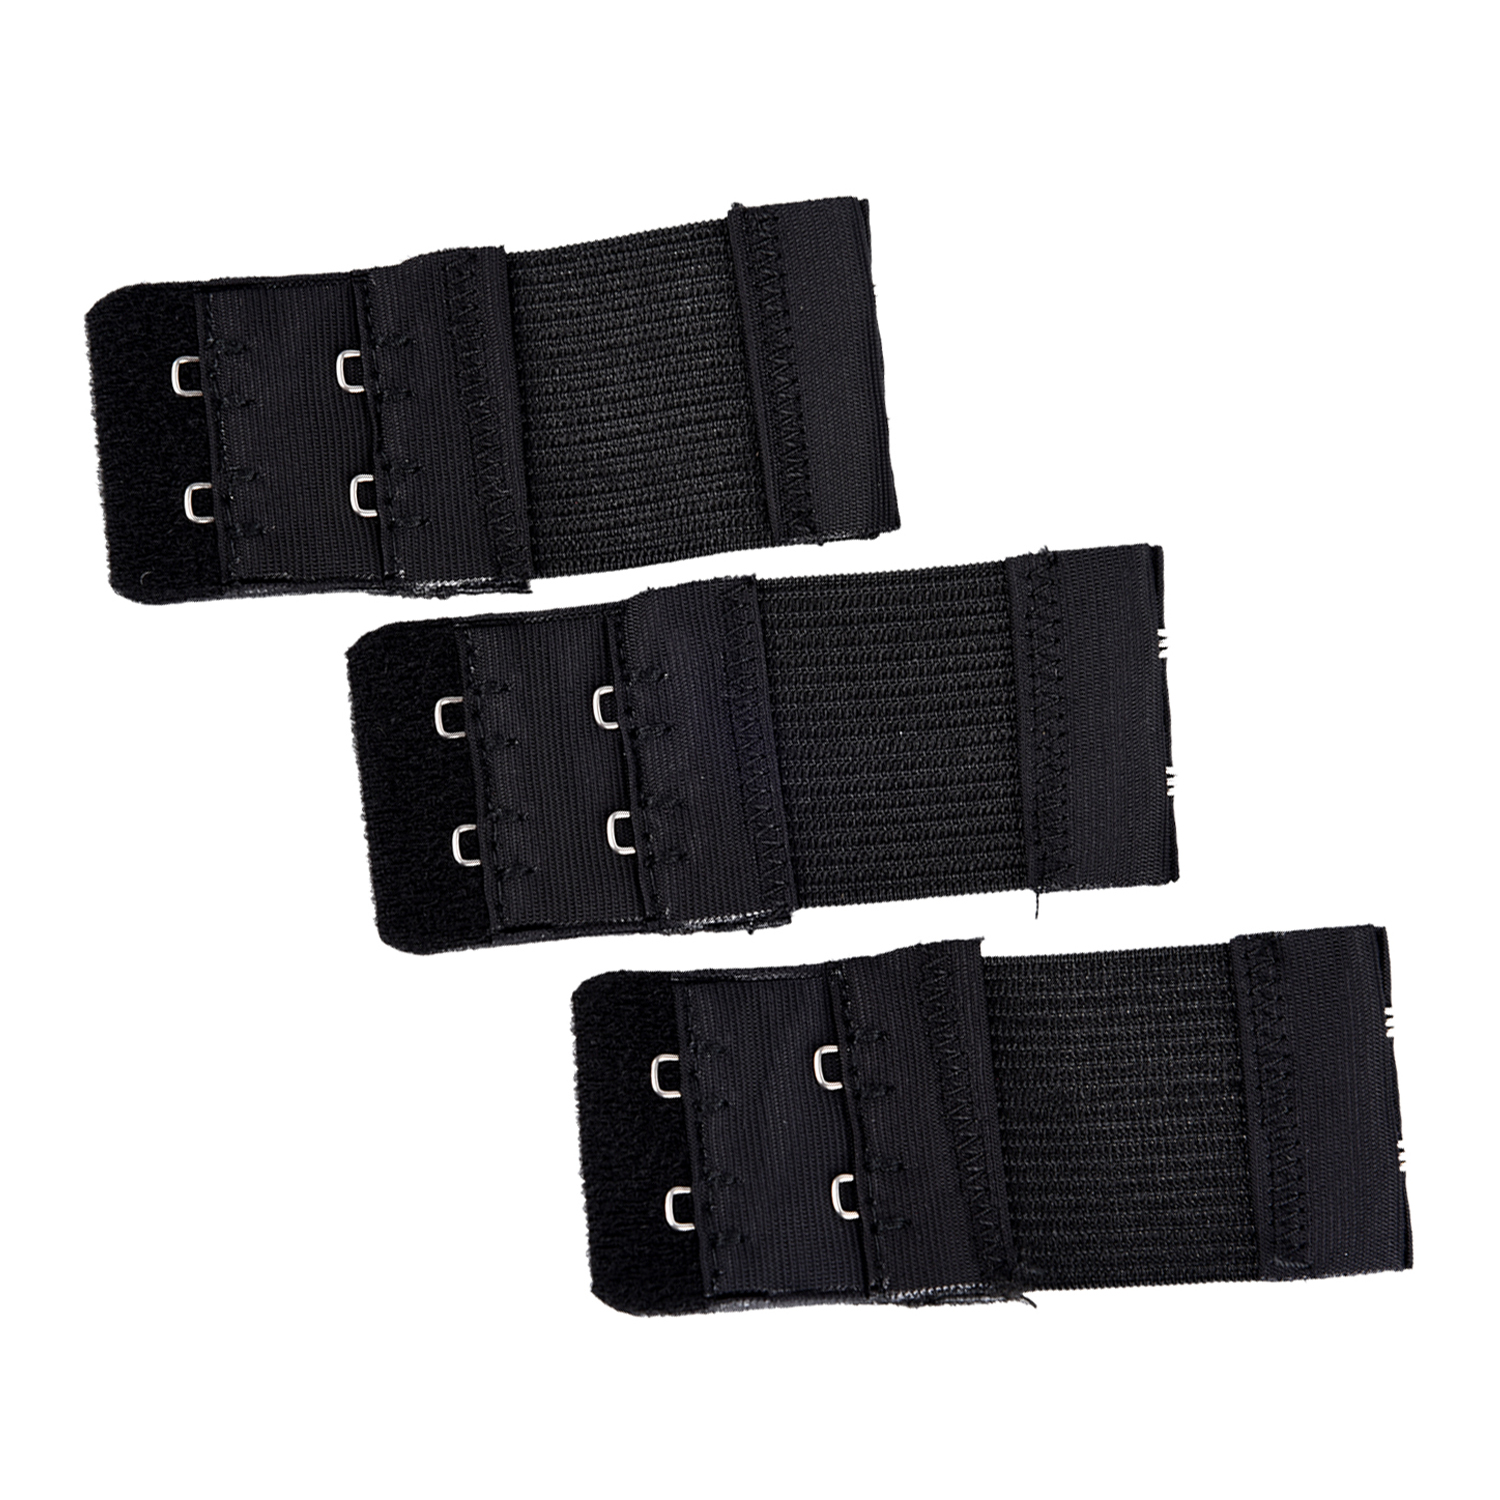 3pcs Woman 2 x 2 Hook and Eye Tape Elastic Extension Bra Extender Black